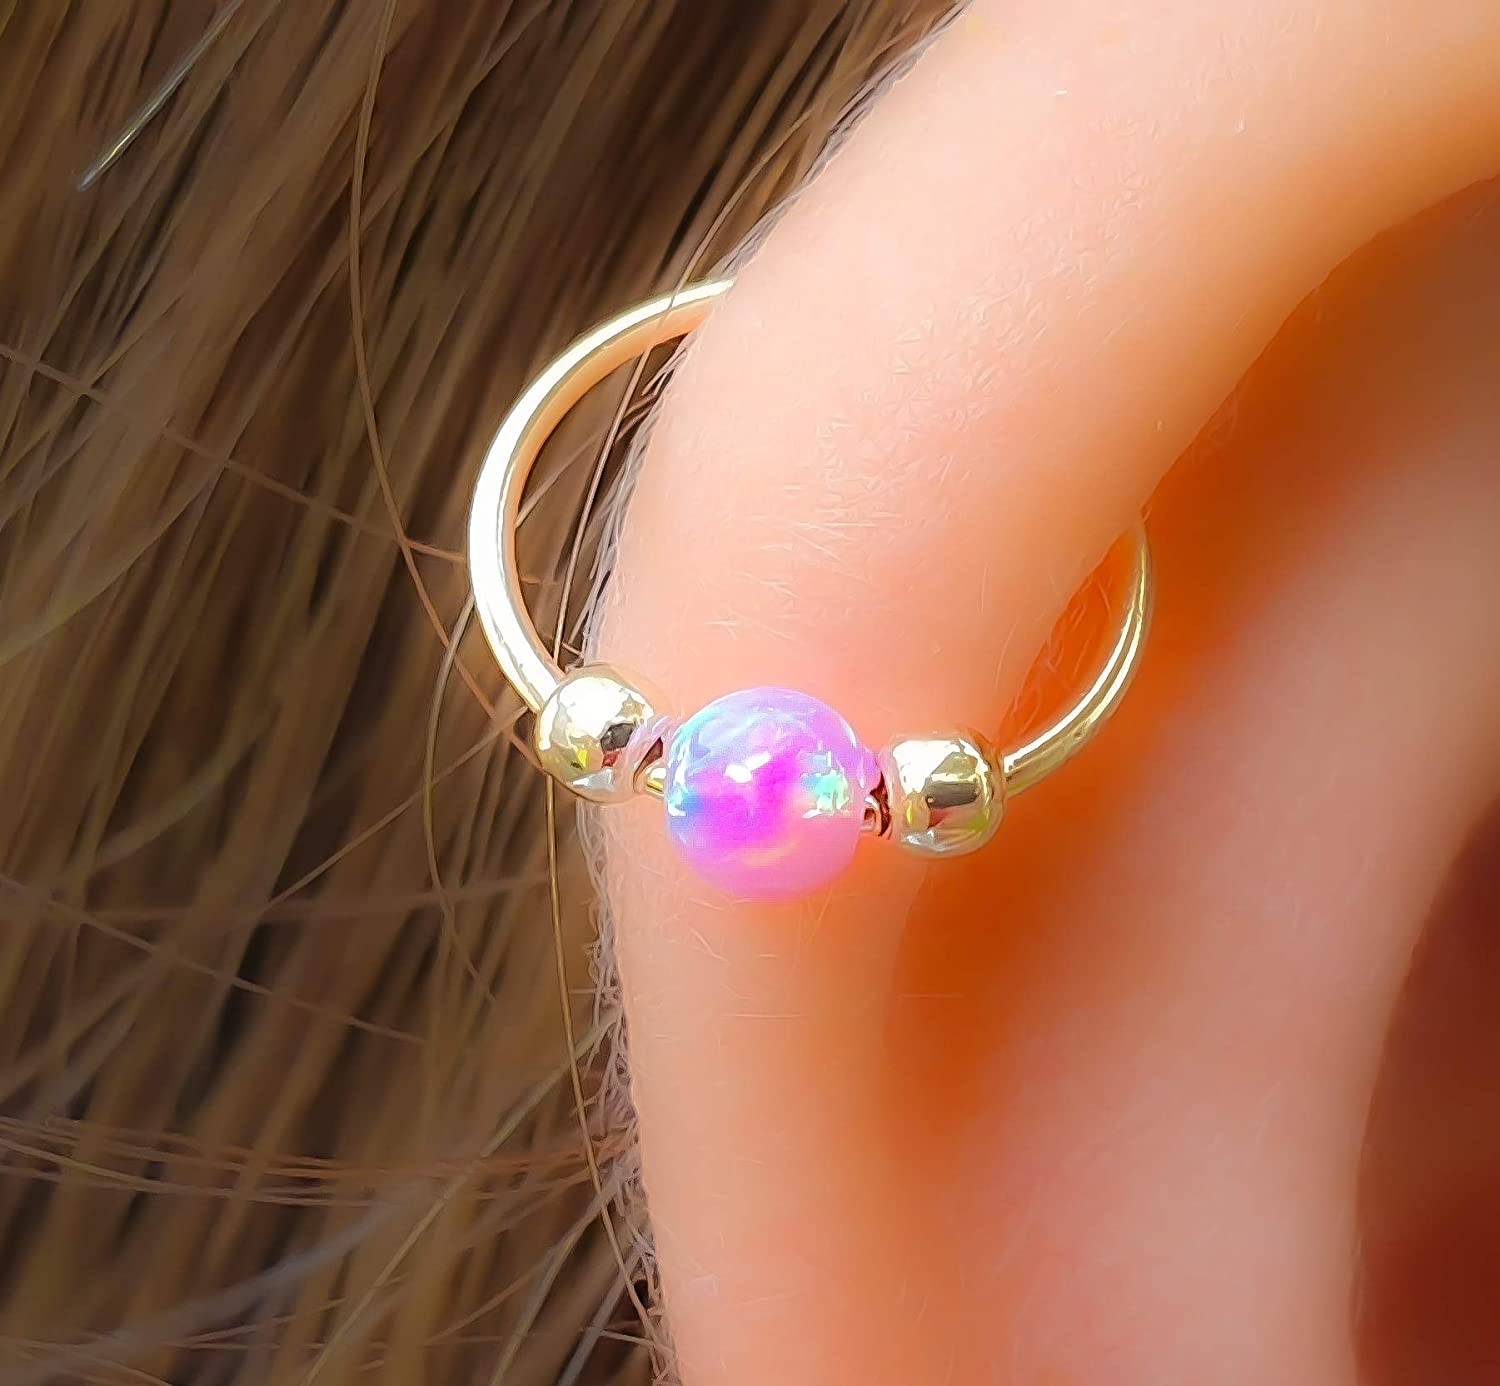 14k Gold Filled Green Opal Cartilage Earrings Ring Opal Helix